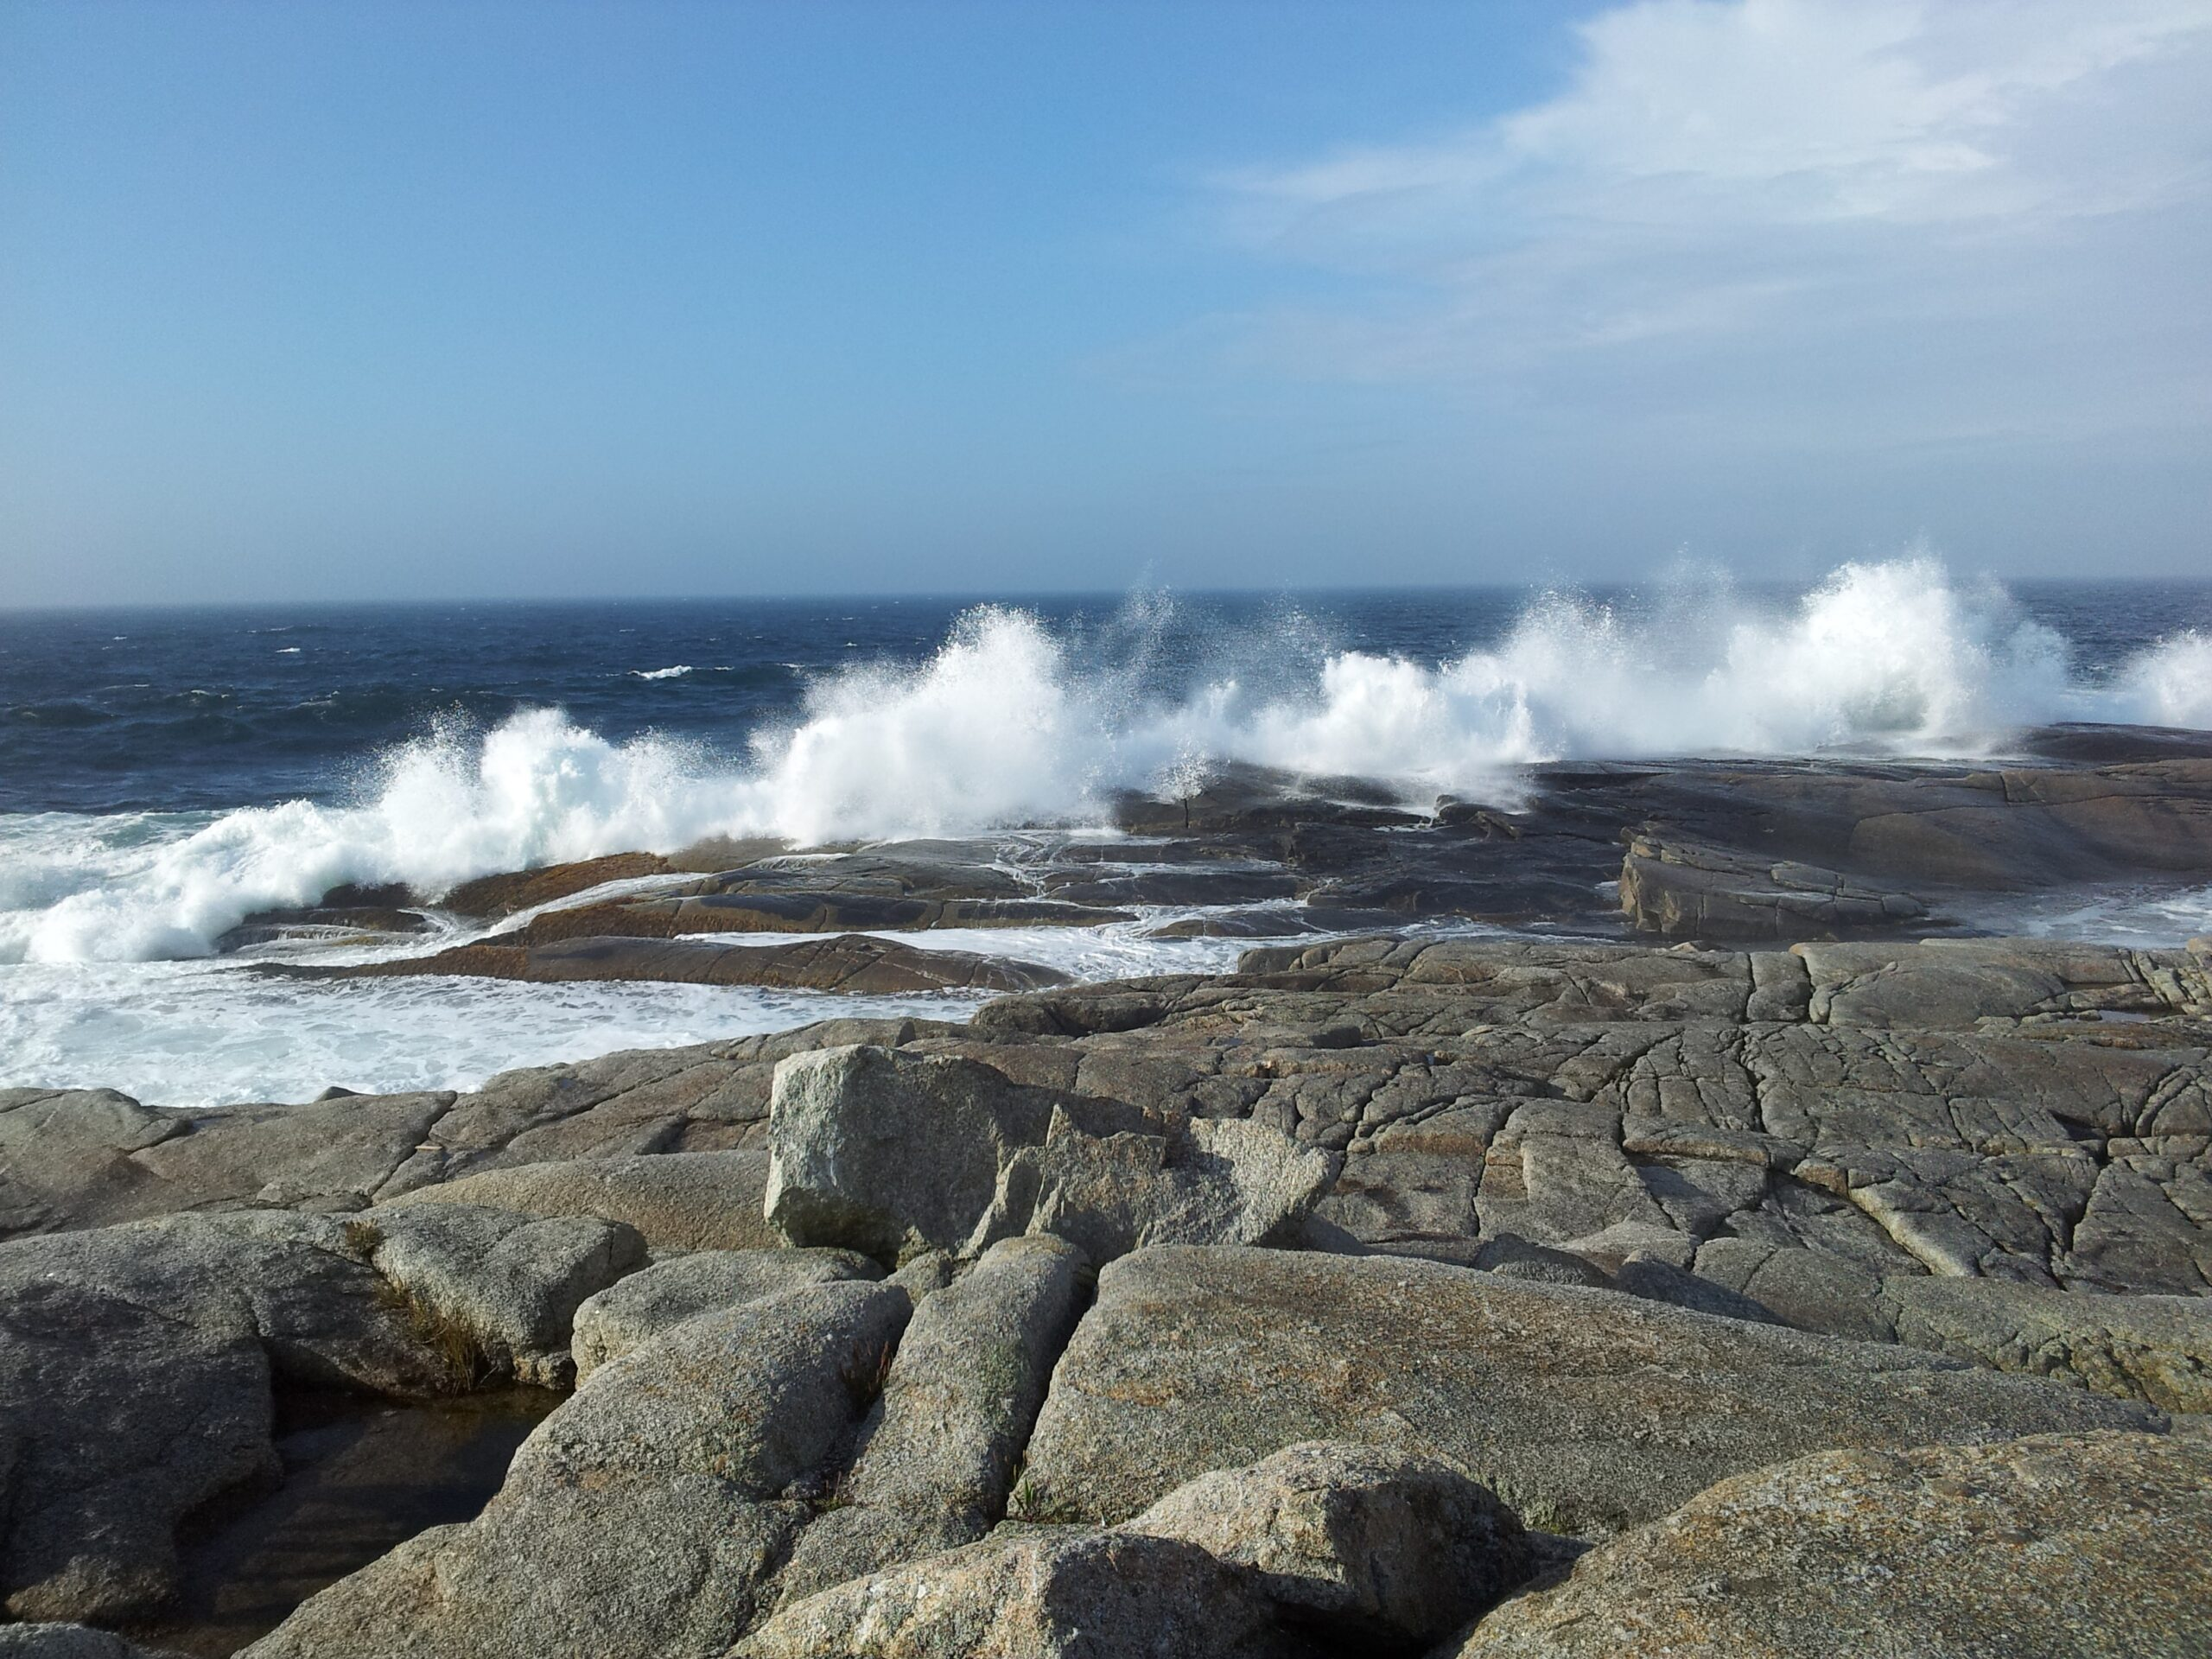 Rocks and pounding waves